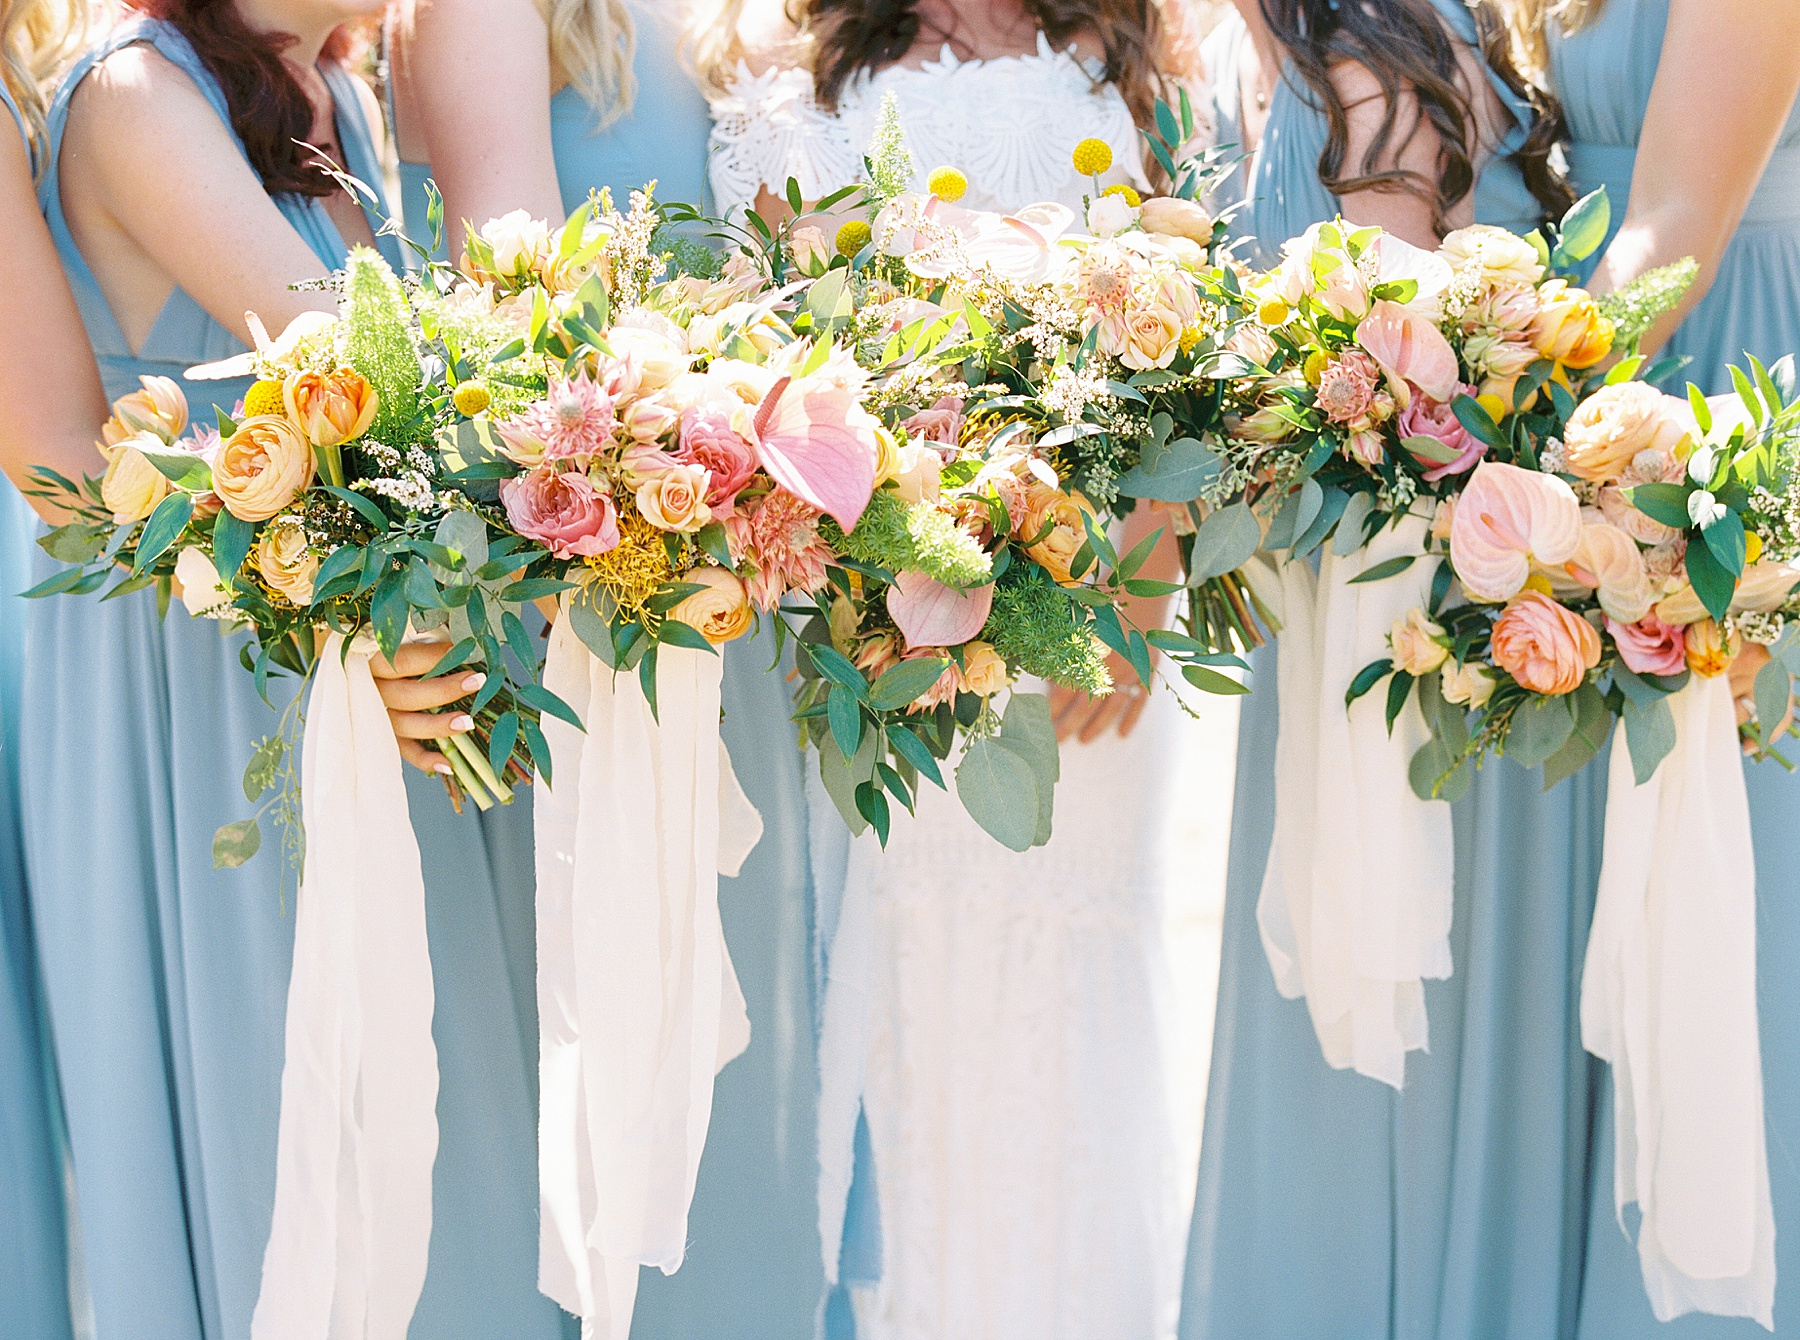 Wente Wedding with A Tropical Color Palette - Ashley & Mike - Featured on Inspired by This - Ashley Baumgartner_0026.jpg